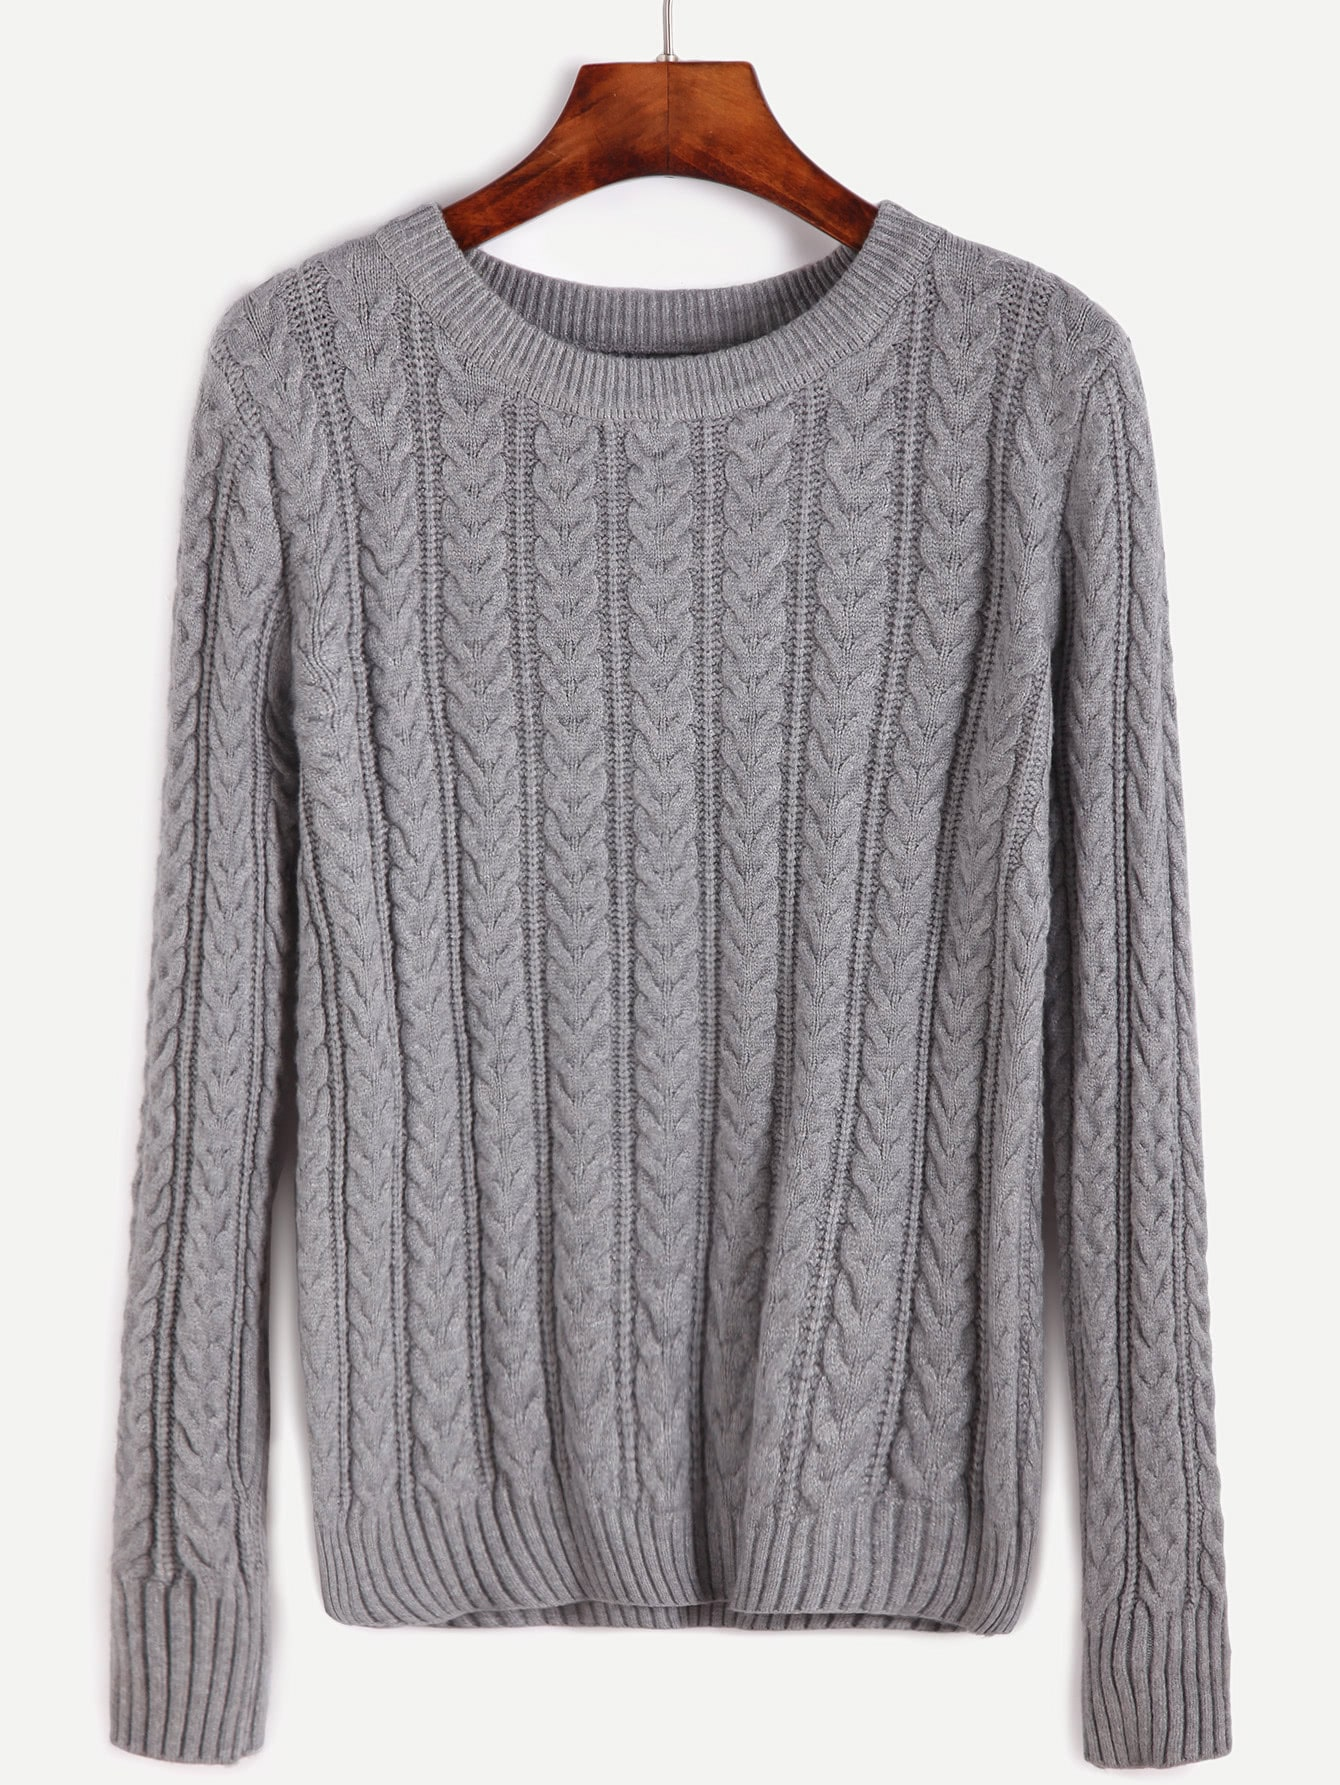 Express has all the sweaters you need to stay comfy and warm every season! Shop our selection of oversized, off the shoulder and cold-shoulder women's sweaters. Grab a cardigan for date night when the restaurant is a little chilly and a tunic sweater for lounging around in your One Eleven leggings on .